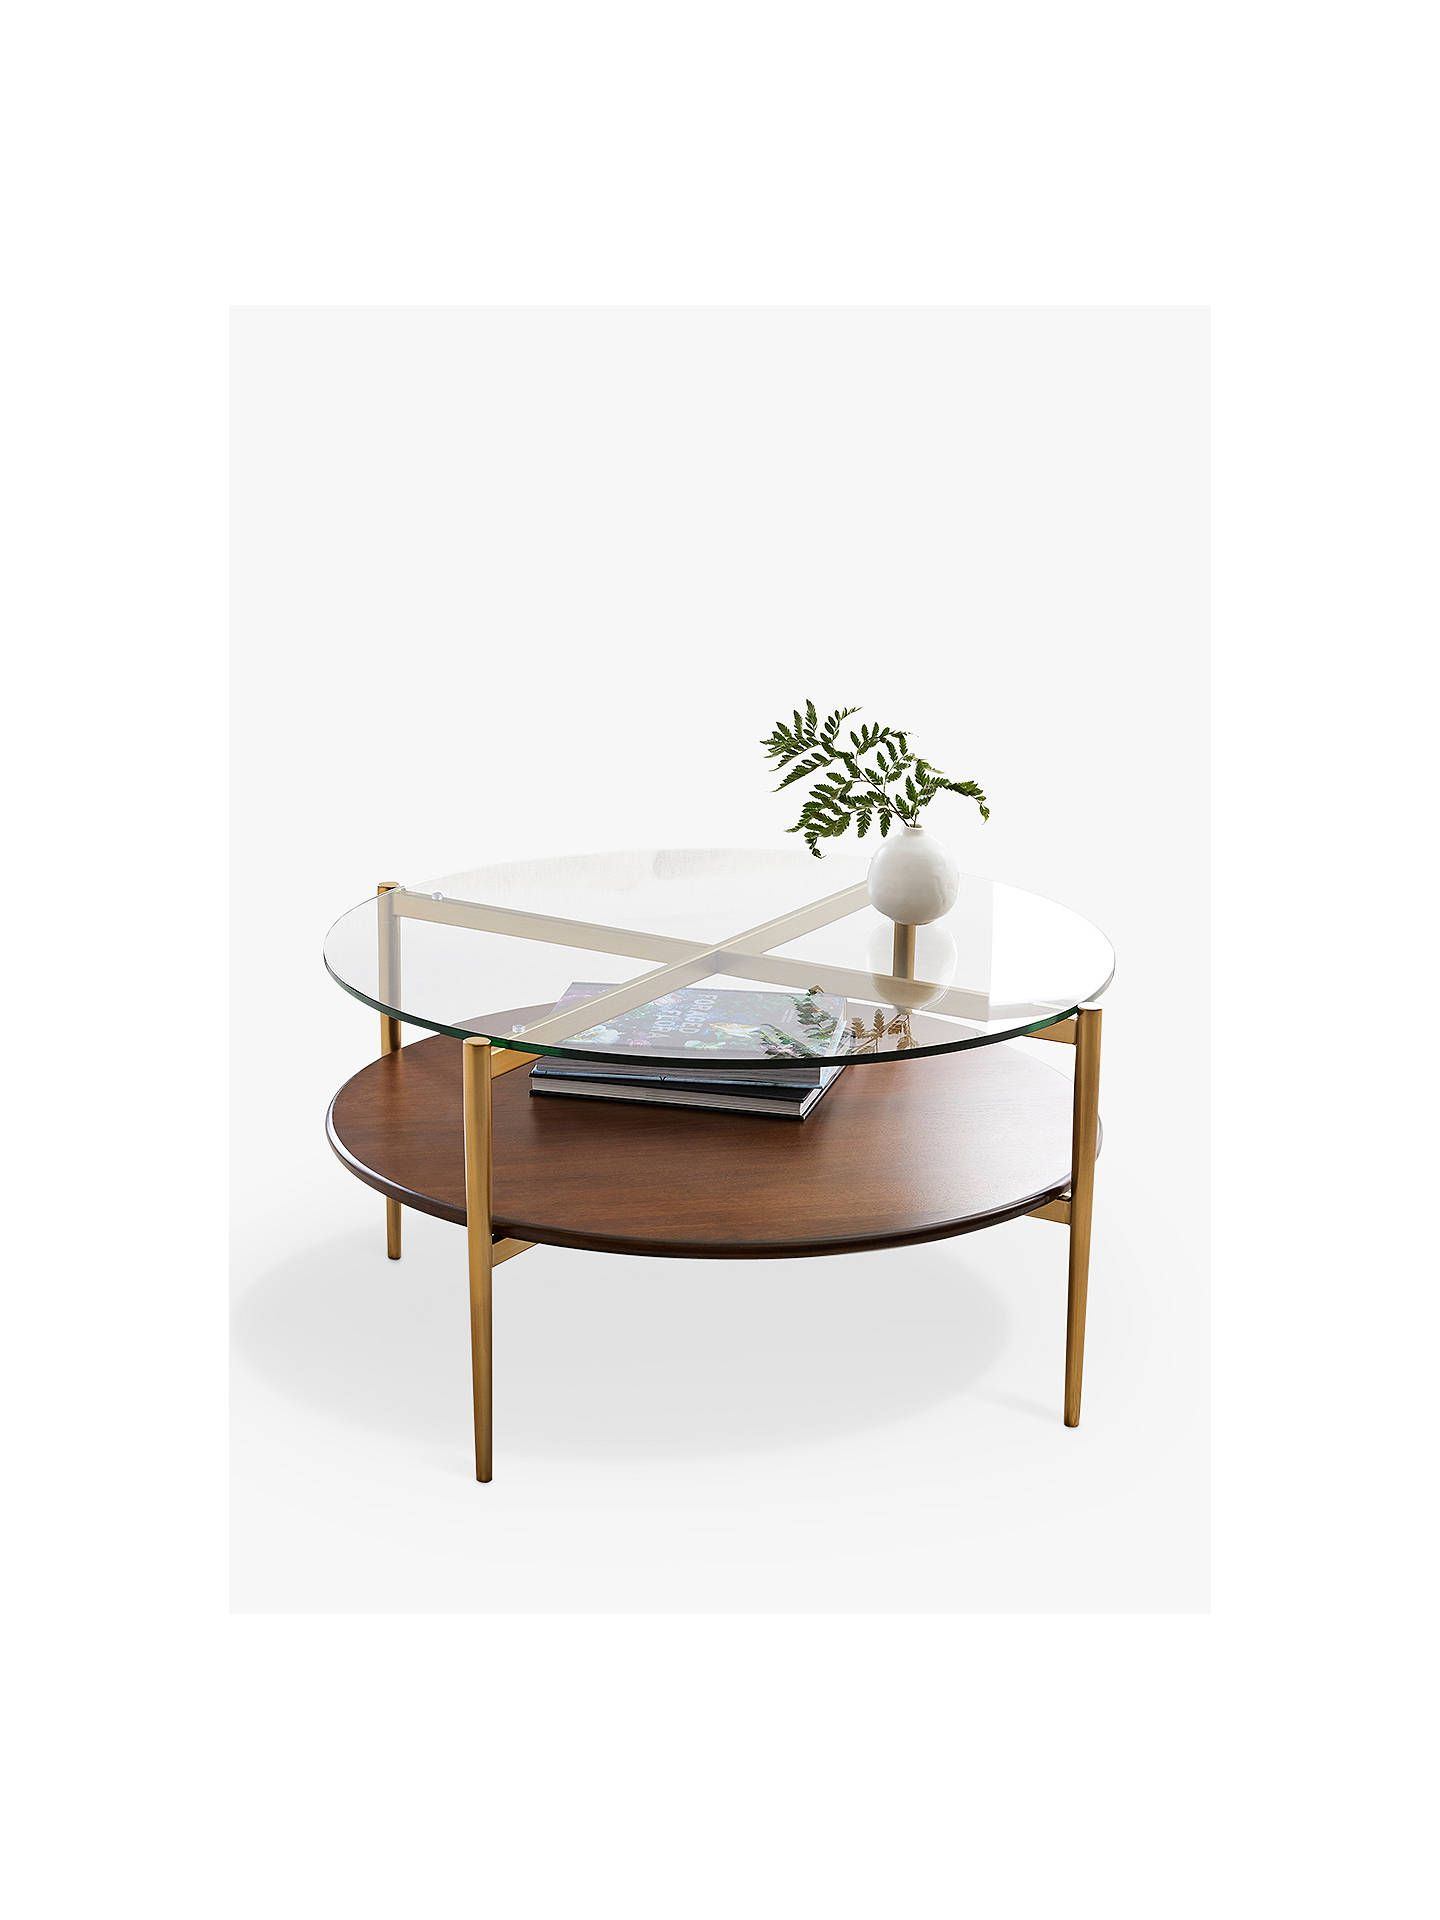 43+ West elm glass top coffee table ideas